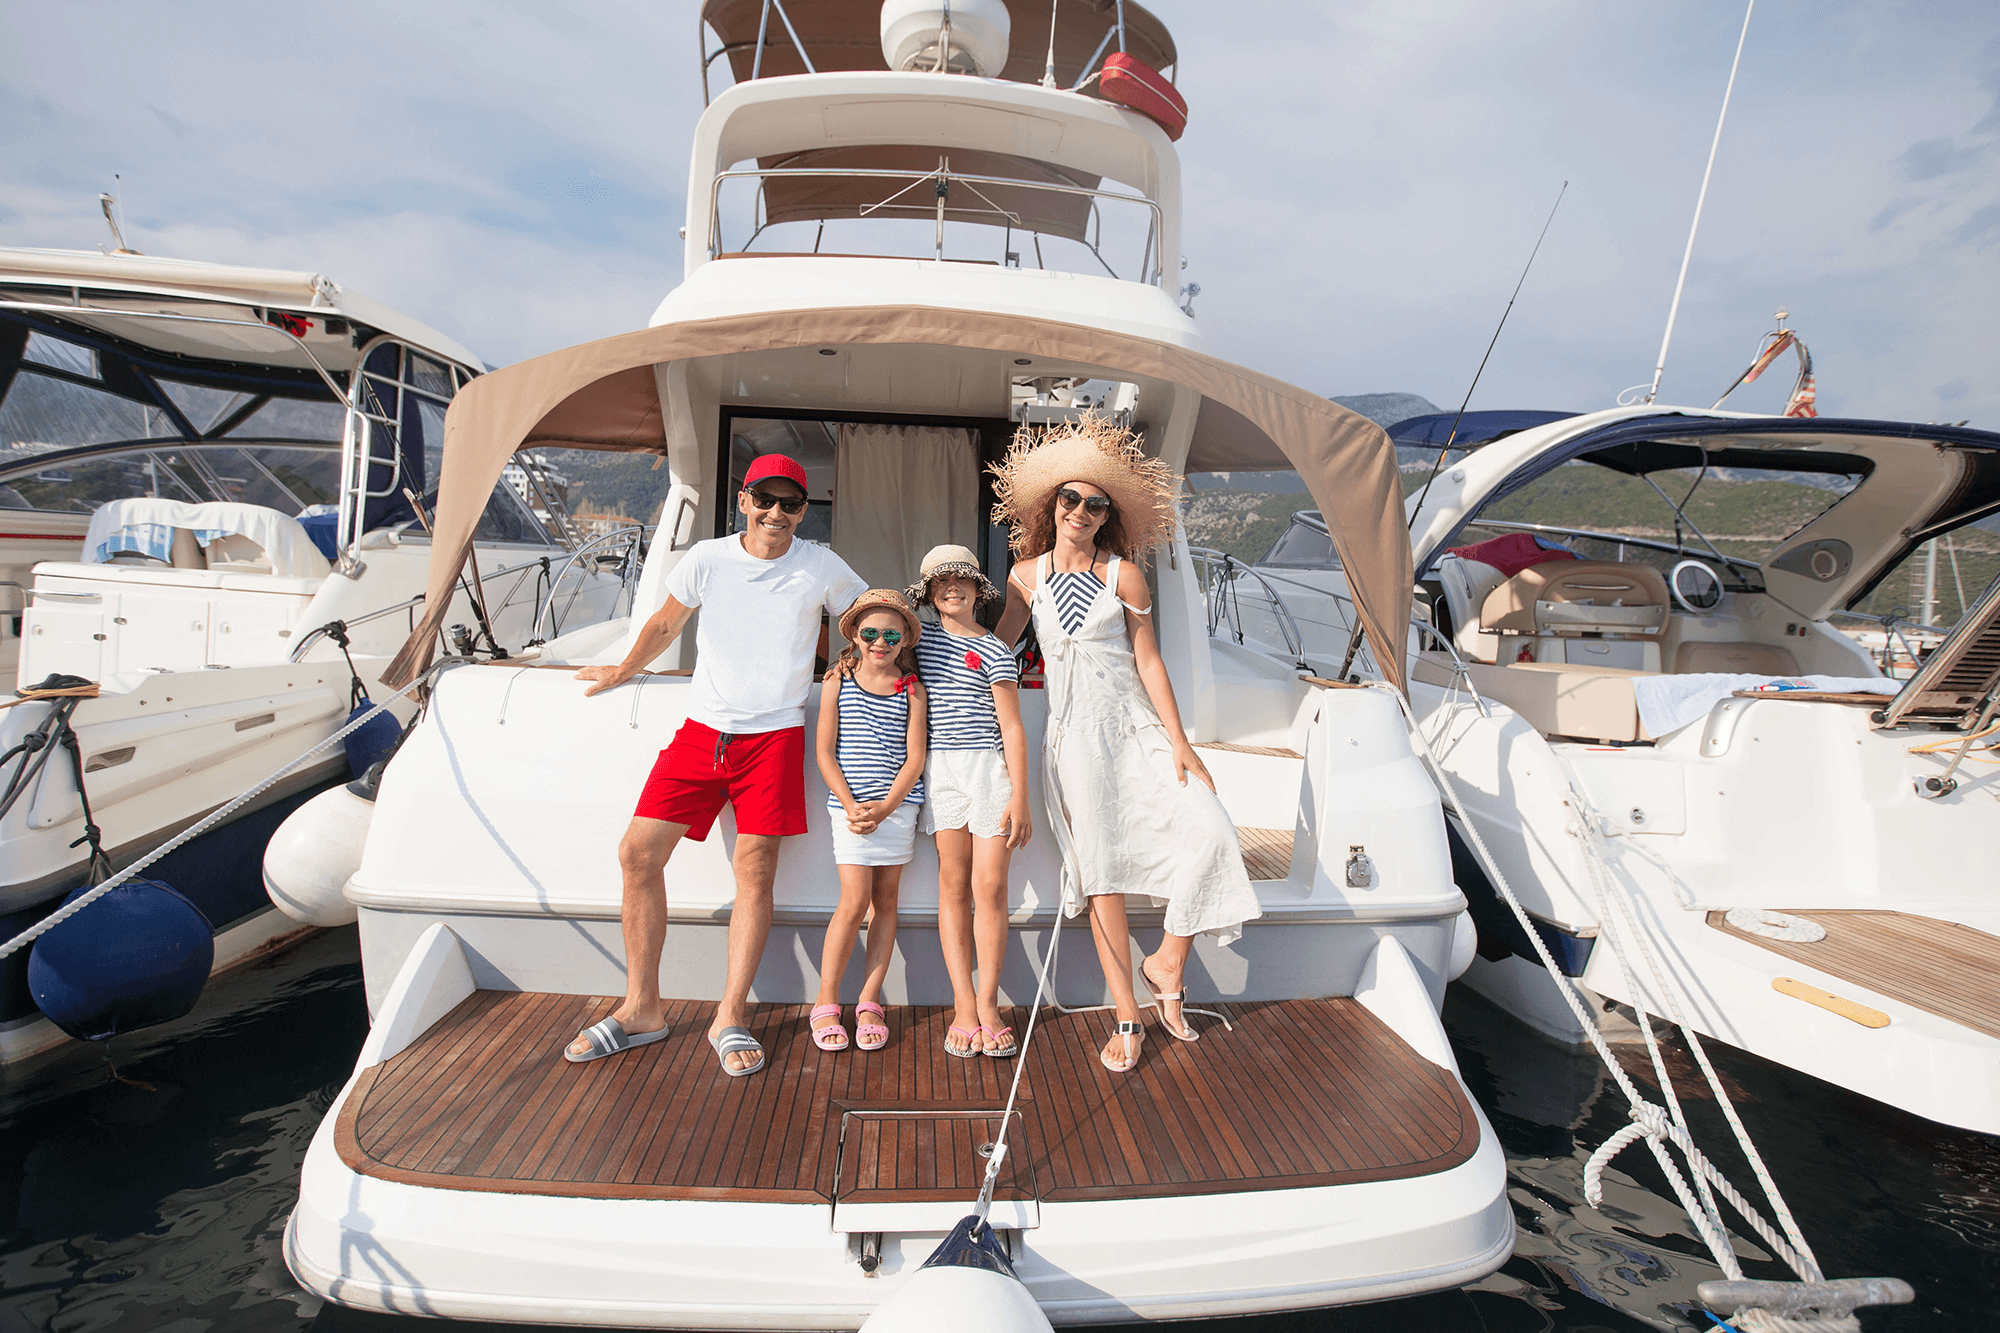 Family Vacations with a private boat